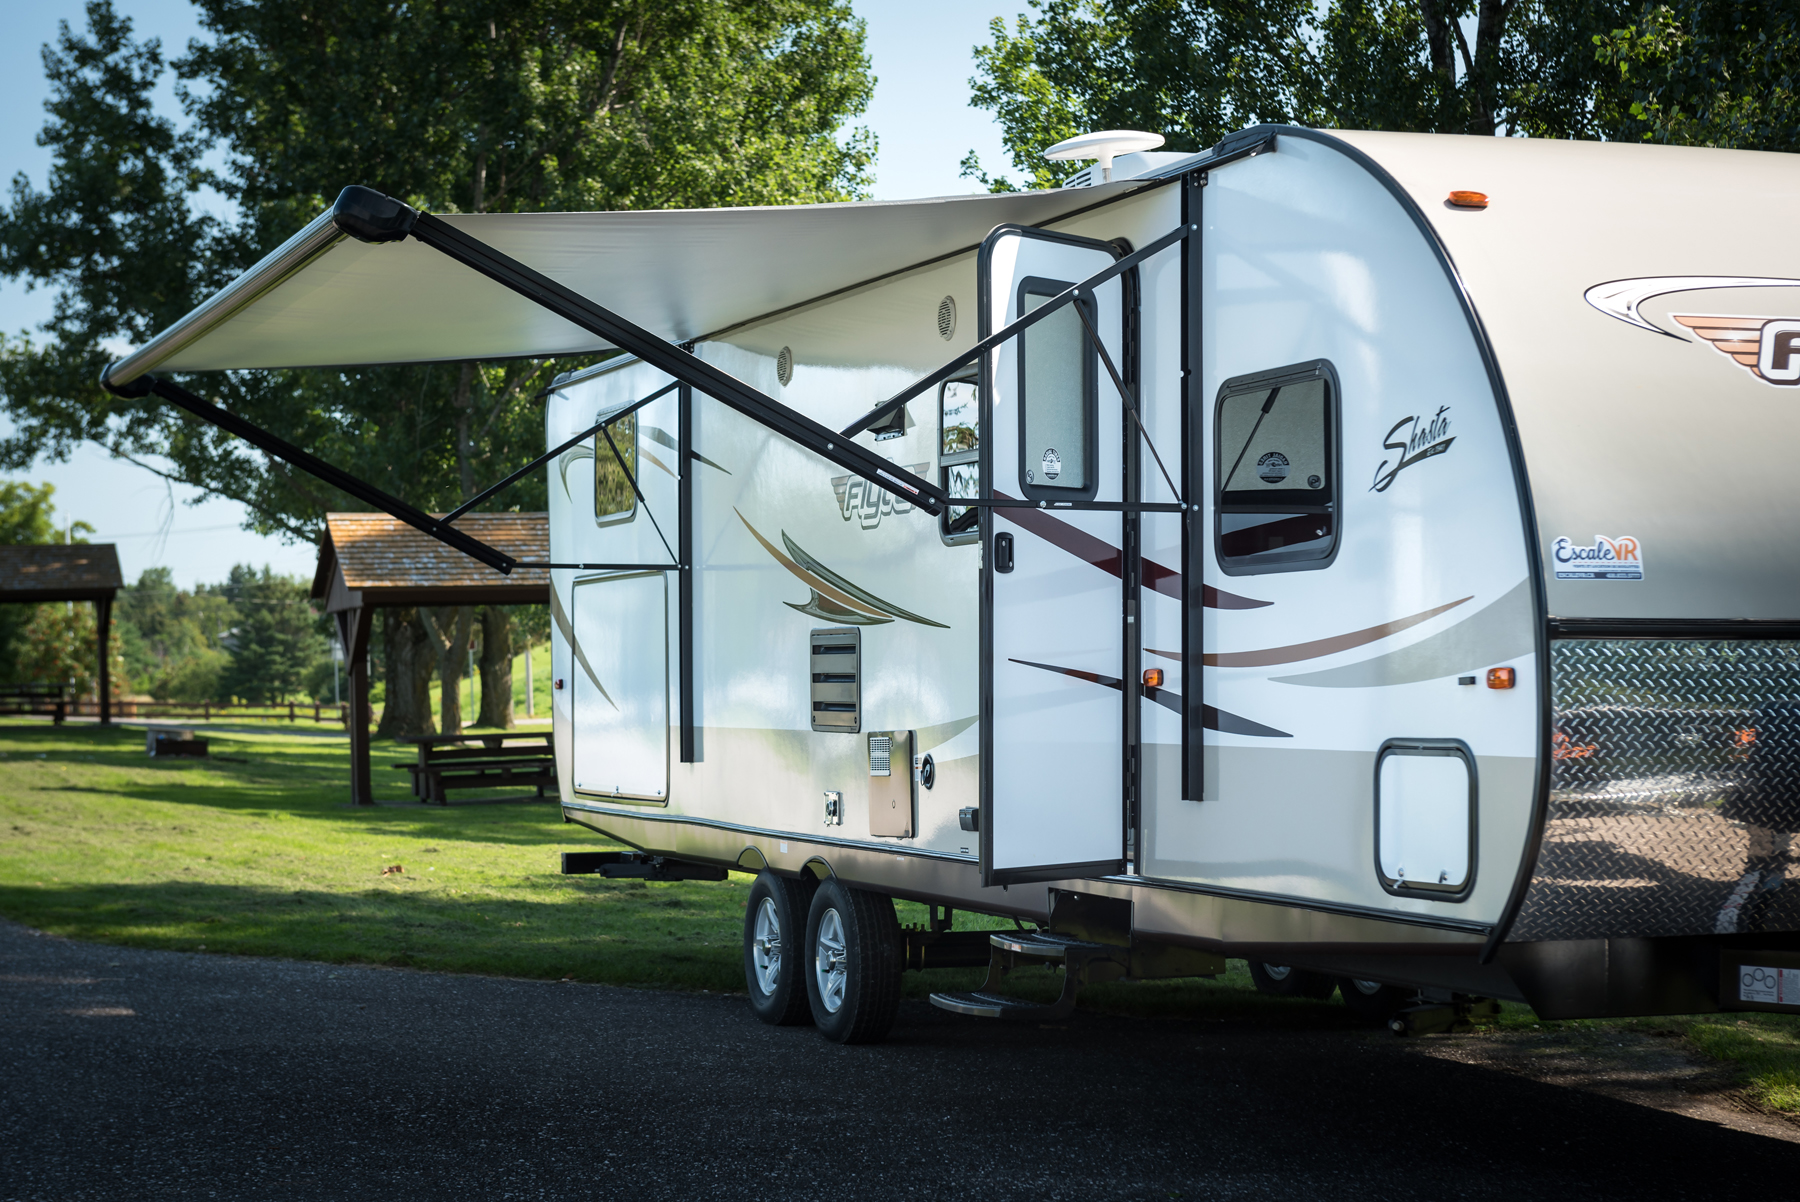 road test of the Shasta Flyte 3150K trailer by Forest River